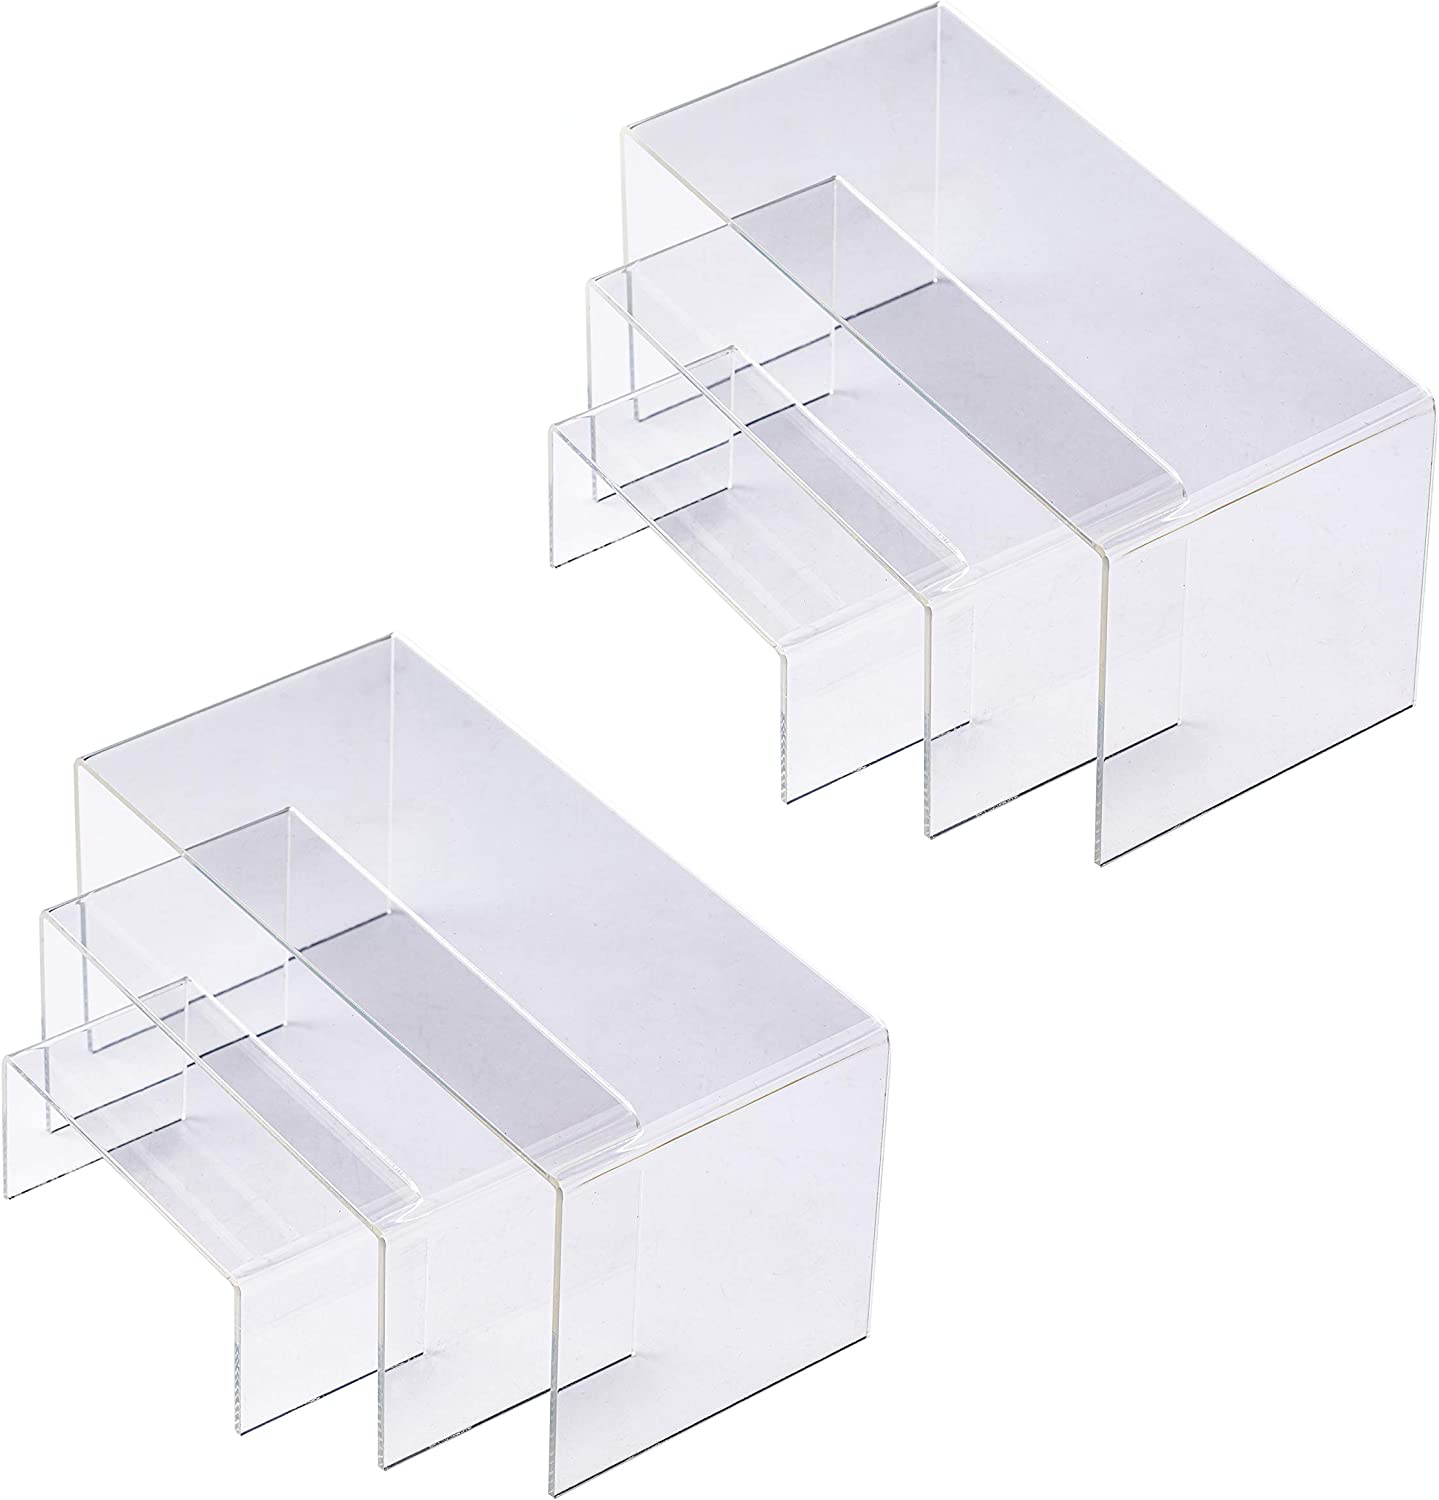 X L MAGNET Acrylic Display Risers 2 Sets of 3 Size Steps Acrylic Display Stand Anti-Corrosion Clear Showcase Display Shelf for Figure Collection Jewelry Cup Cake Buffet